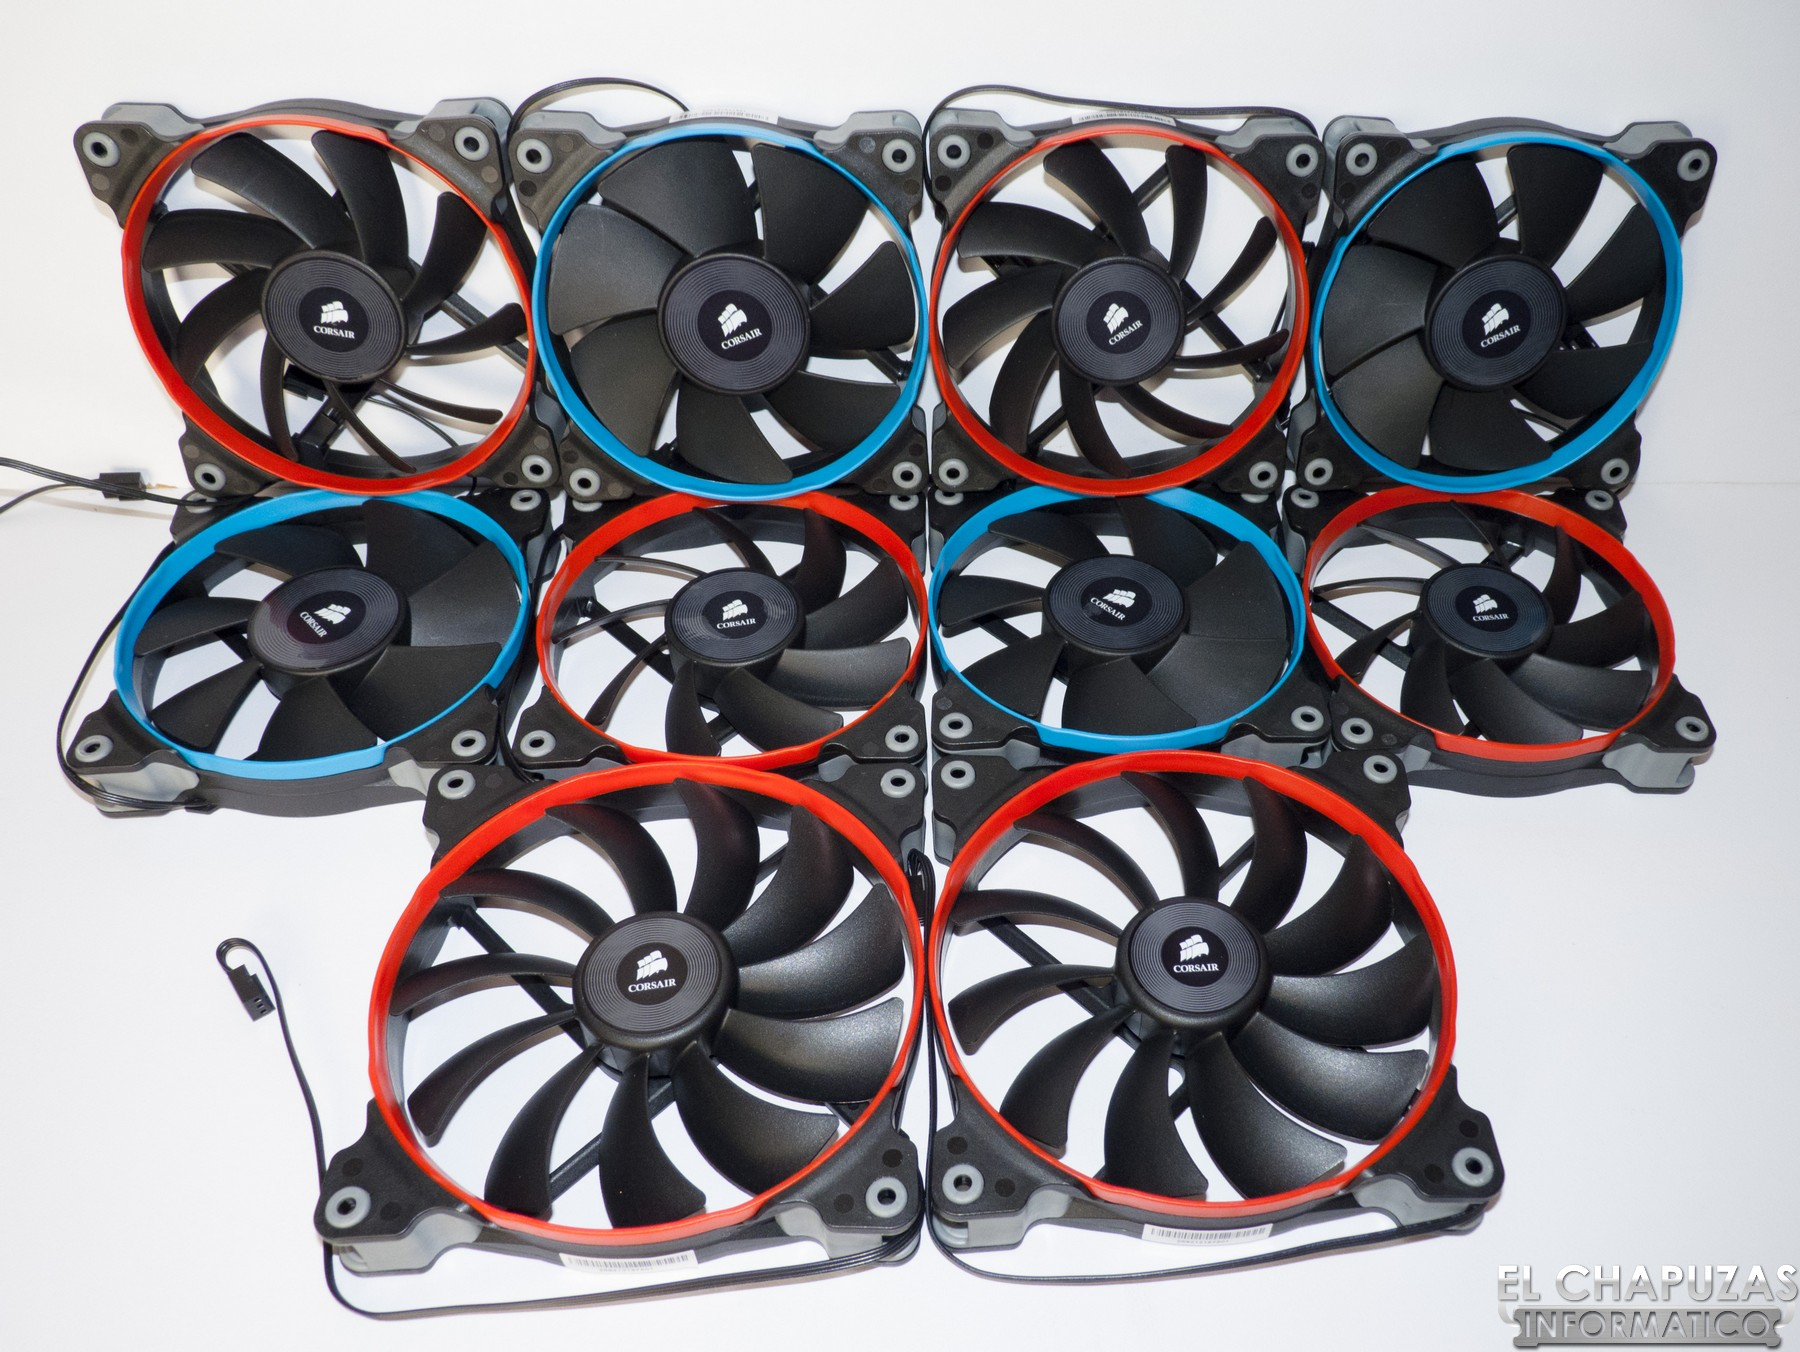 Review: Corsair Air Series